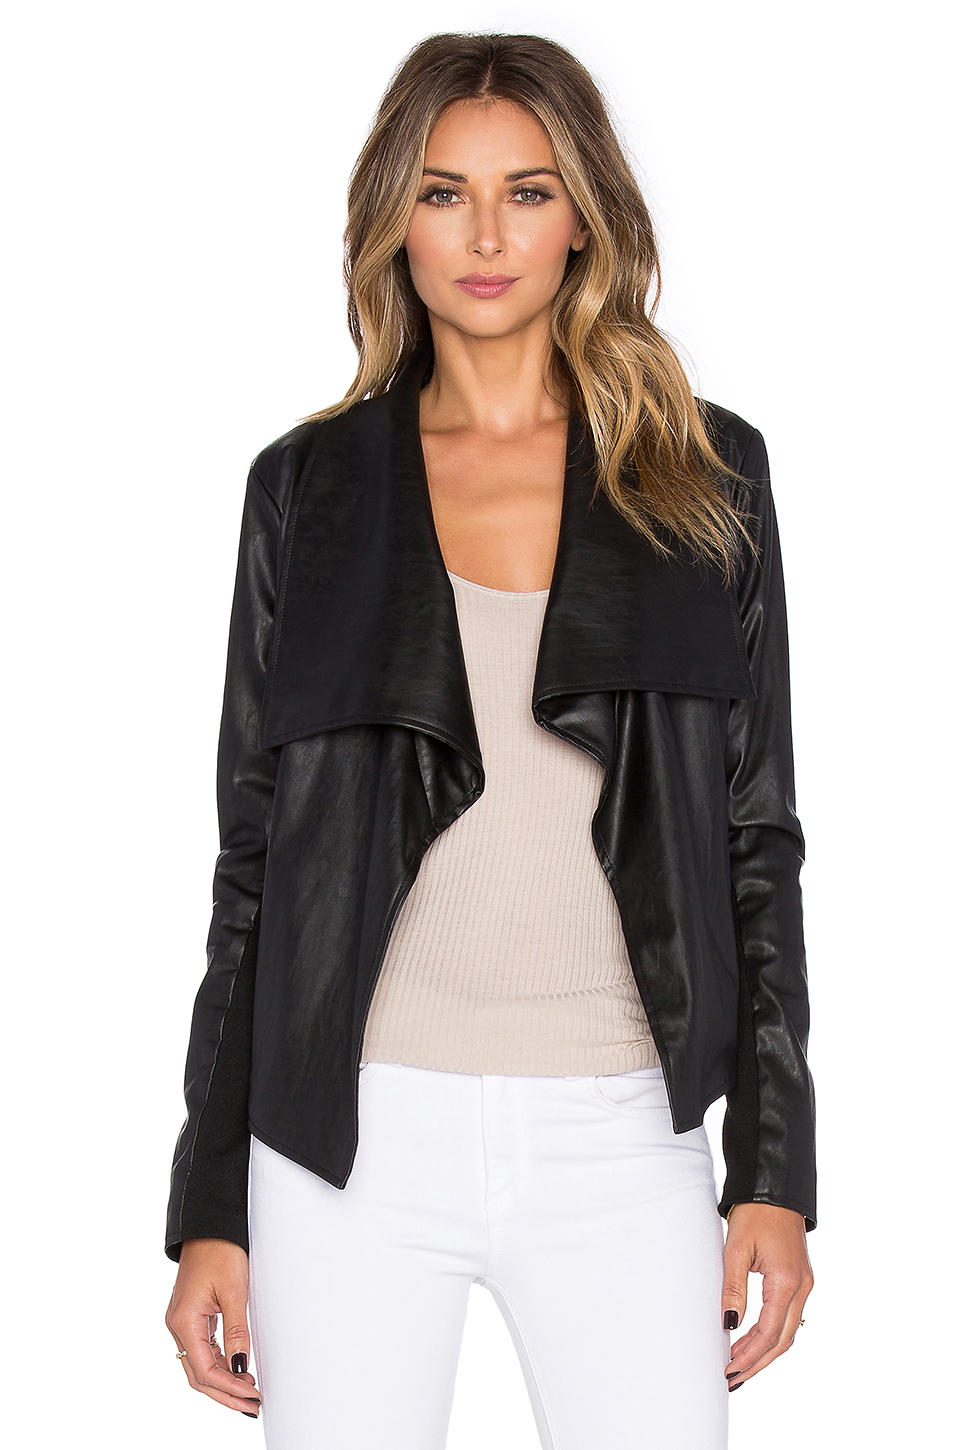 Faux Leather Jacket Roundup - Happily Ever Parker